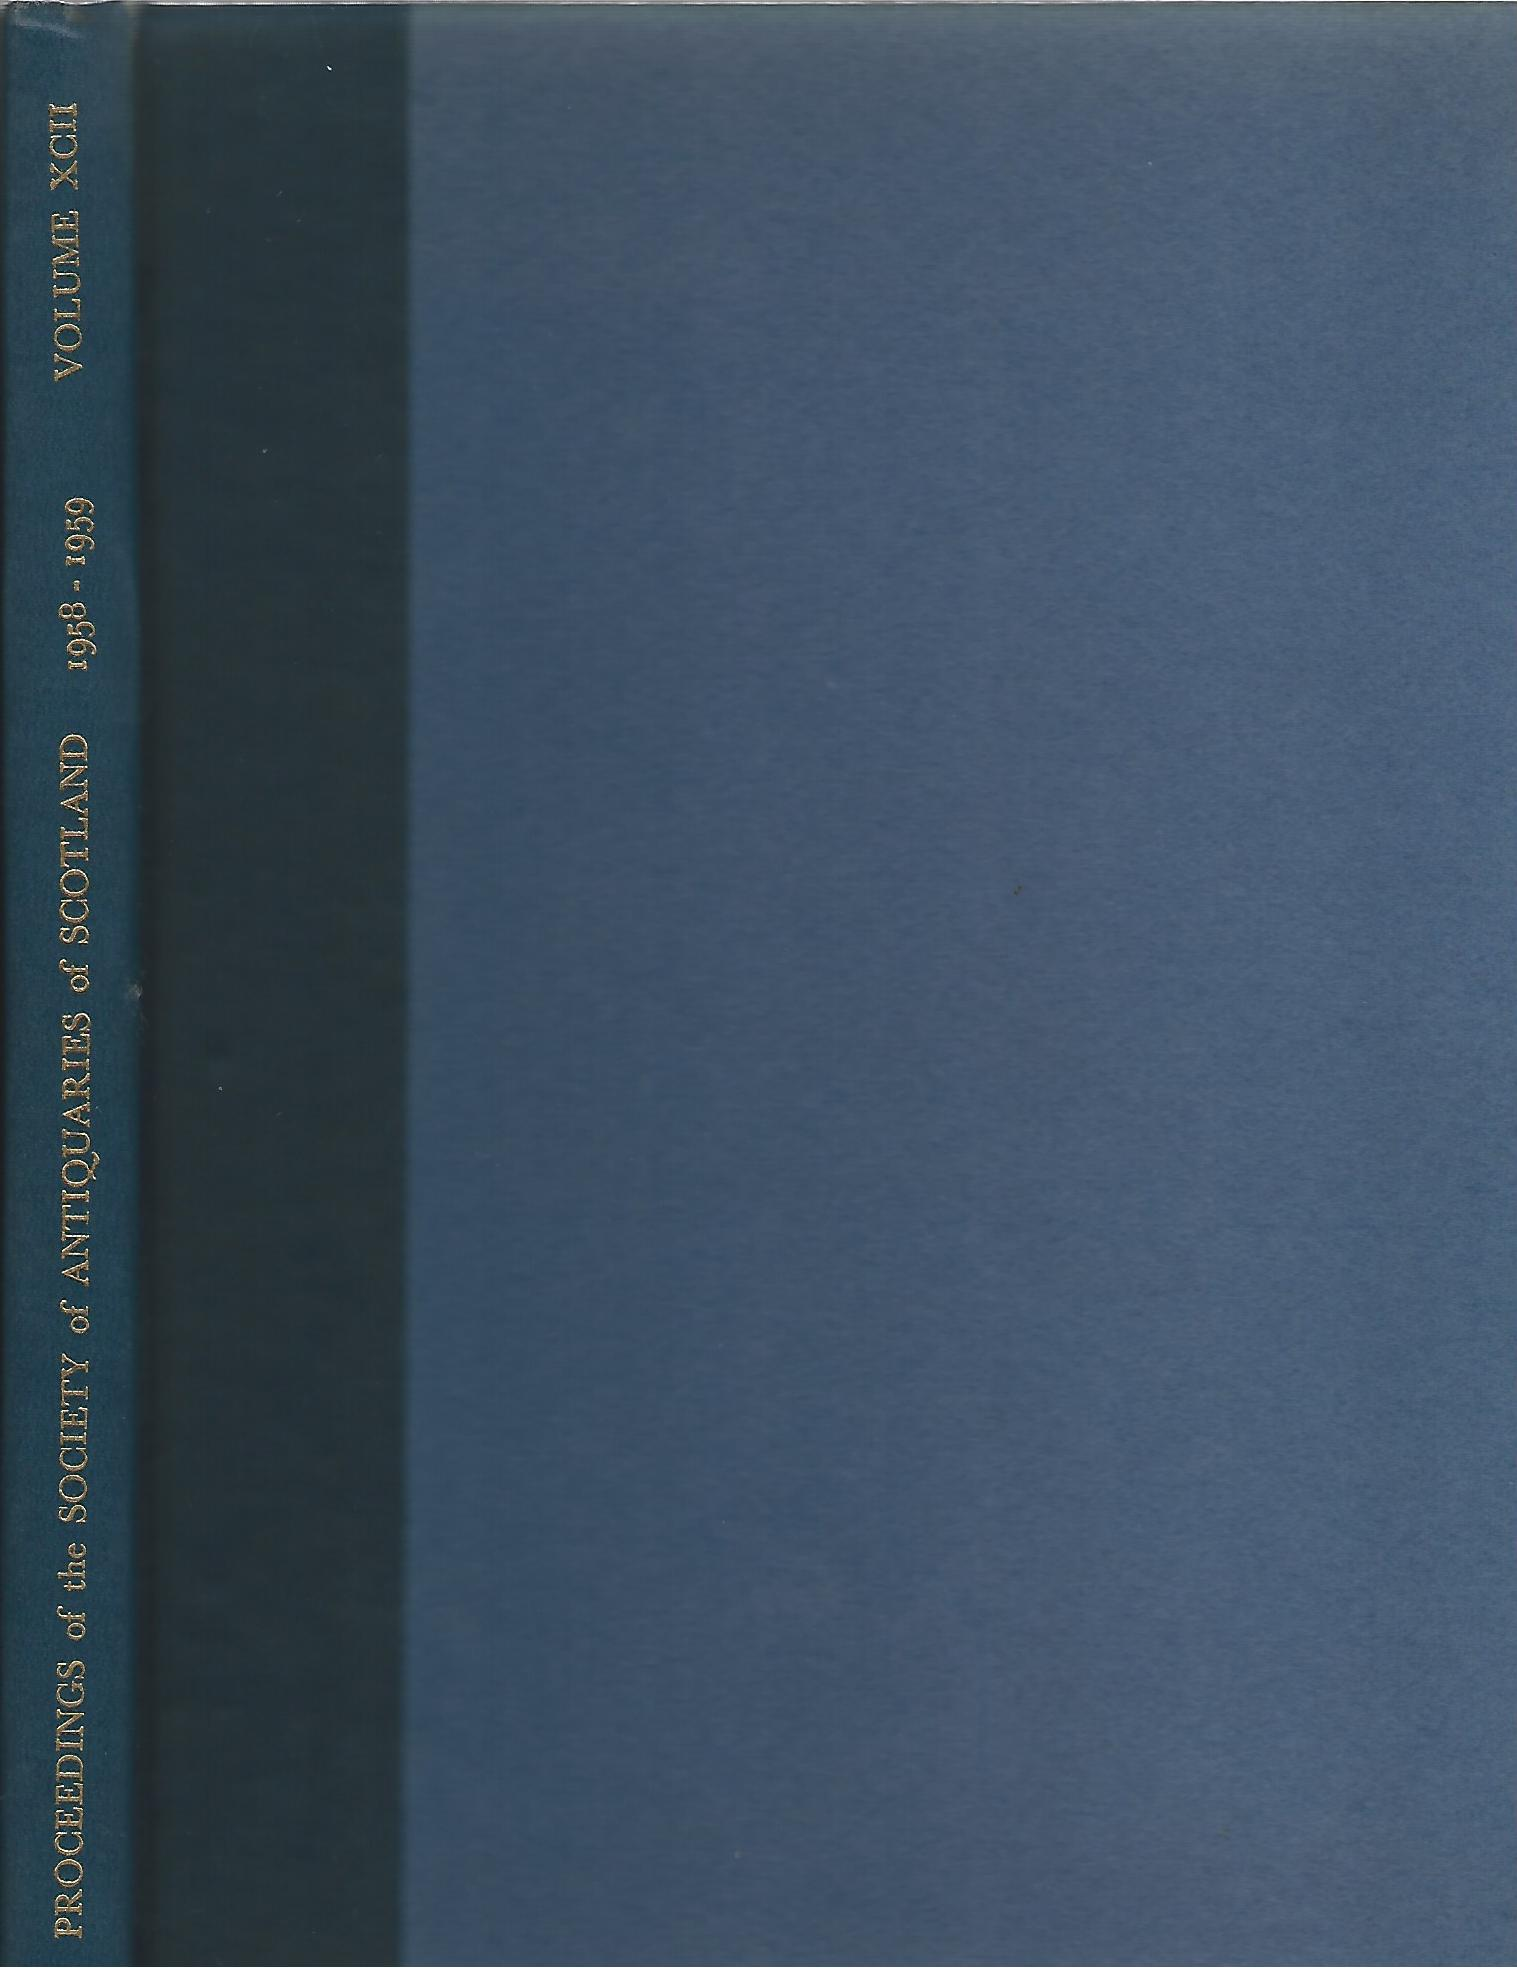 Image for Proceedings of The Society of Antiquaries of Scotland Volume XCI 1958-1959.